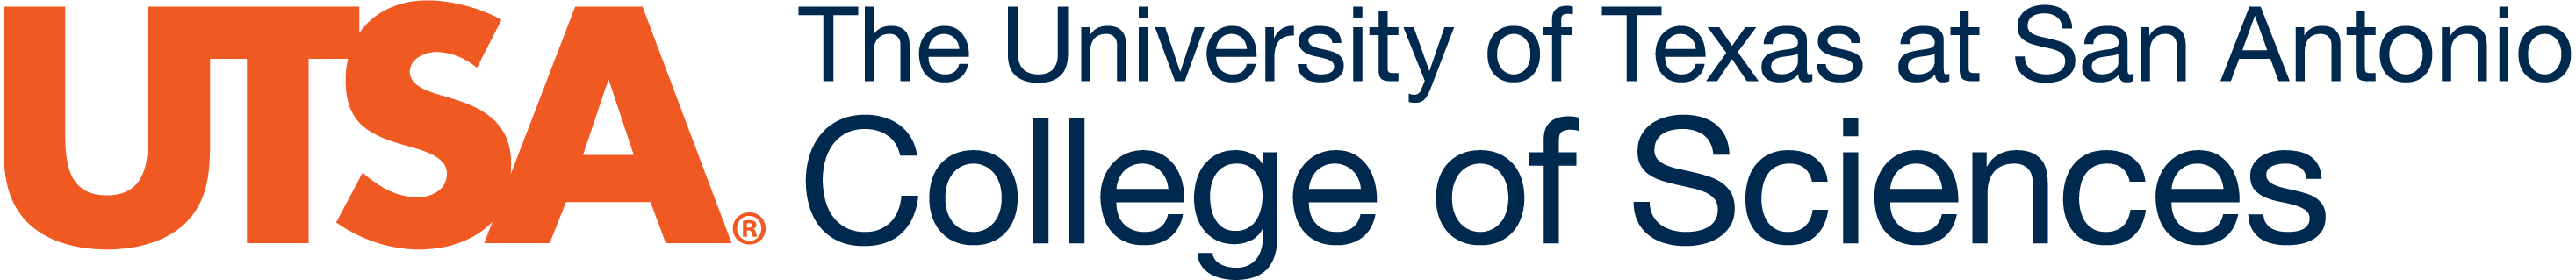 College of Scie... Utsa Logo Png